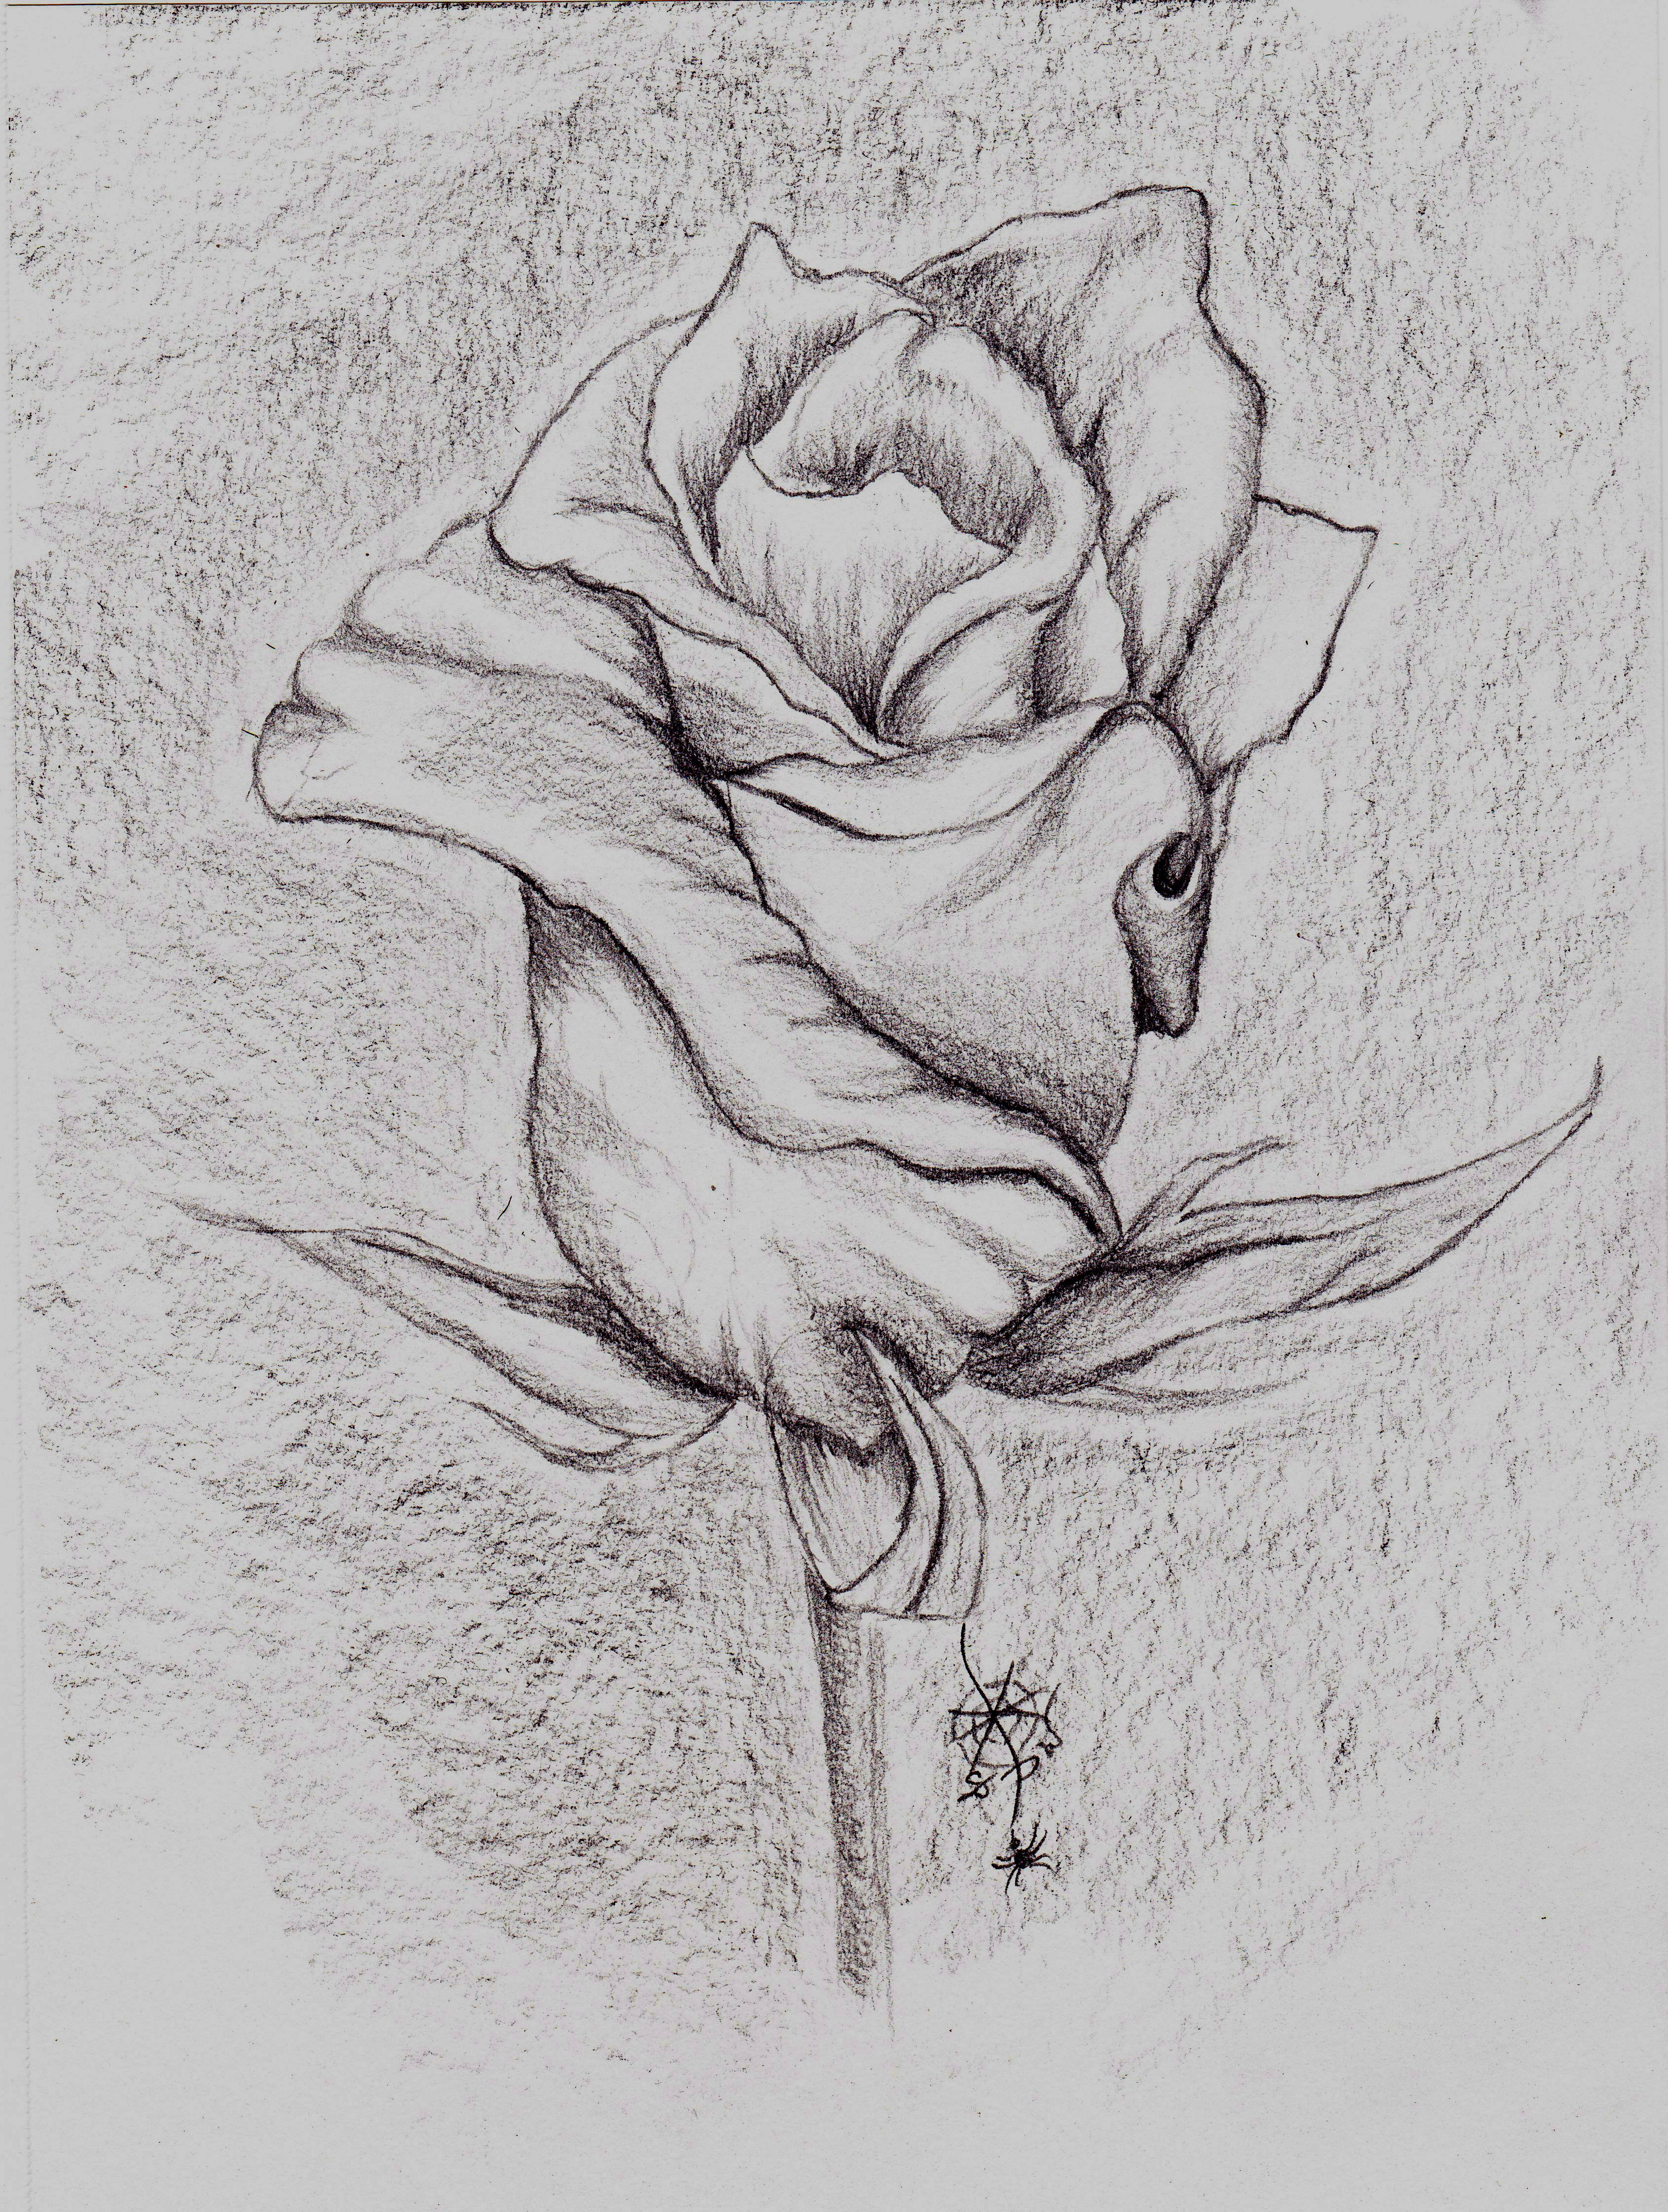 Drawn rose pencil outline Pencil Drawings amourdefraise and drawings